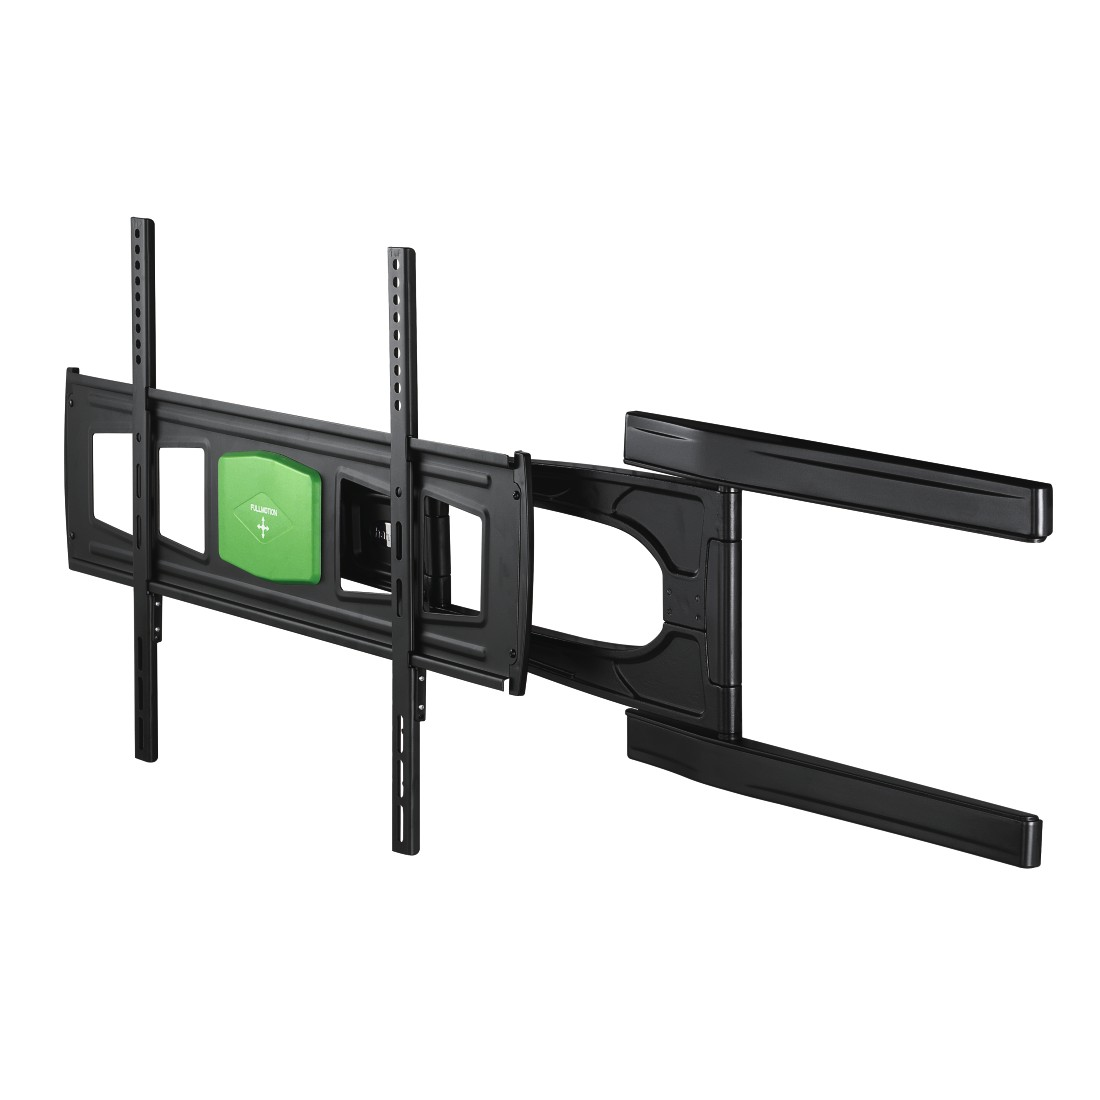 "dex8 High-Res Detail 8 - Hama, Ultraslim FULLMOTION TV Wall Bracket, 3 Stars, 165cm (65""), 2 Arm, black"